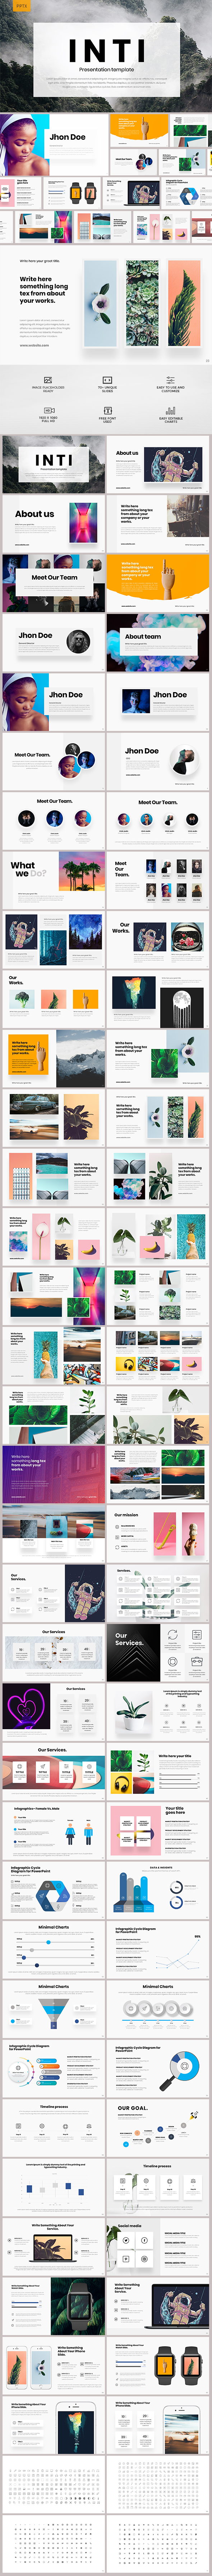 Inti Powerpoint Template - PowerPoint Templates Presentation Templates